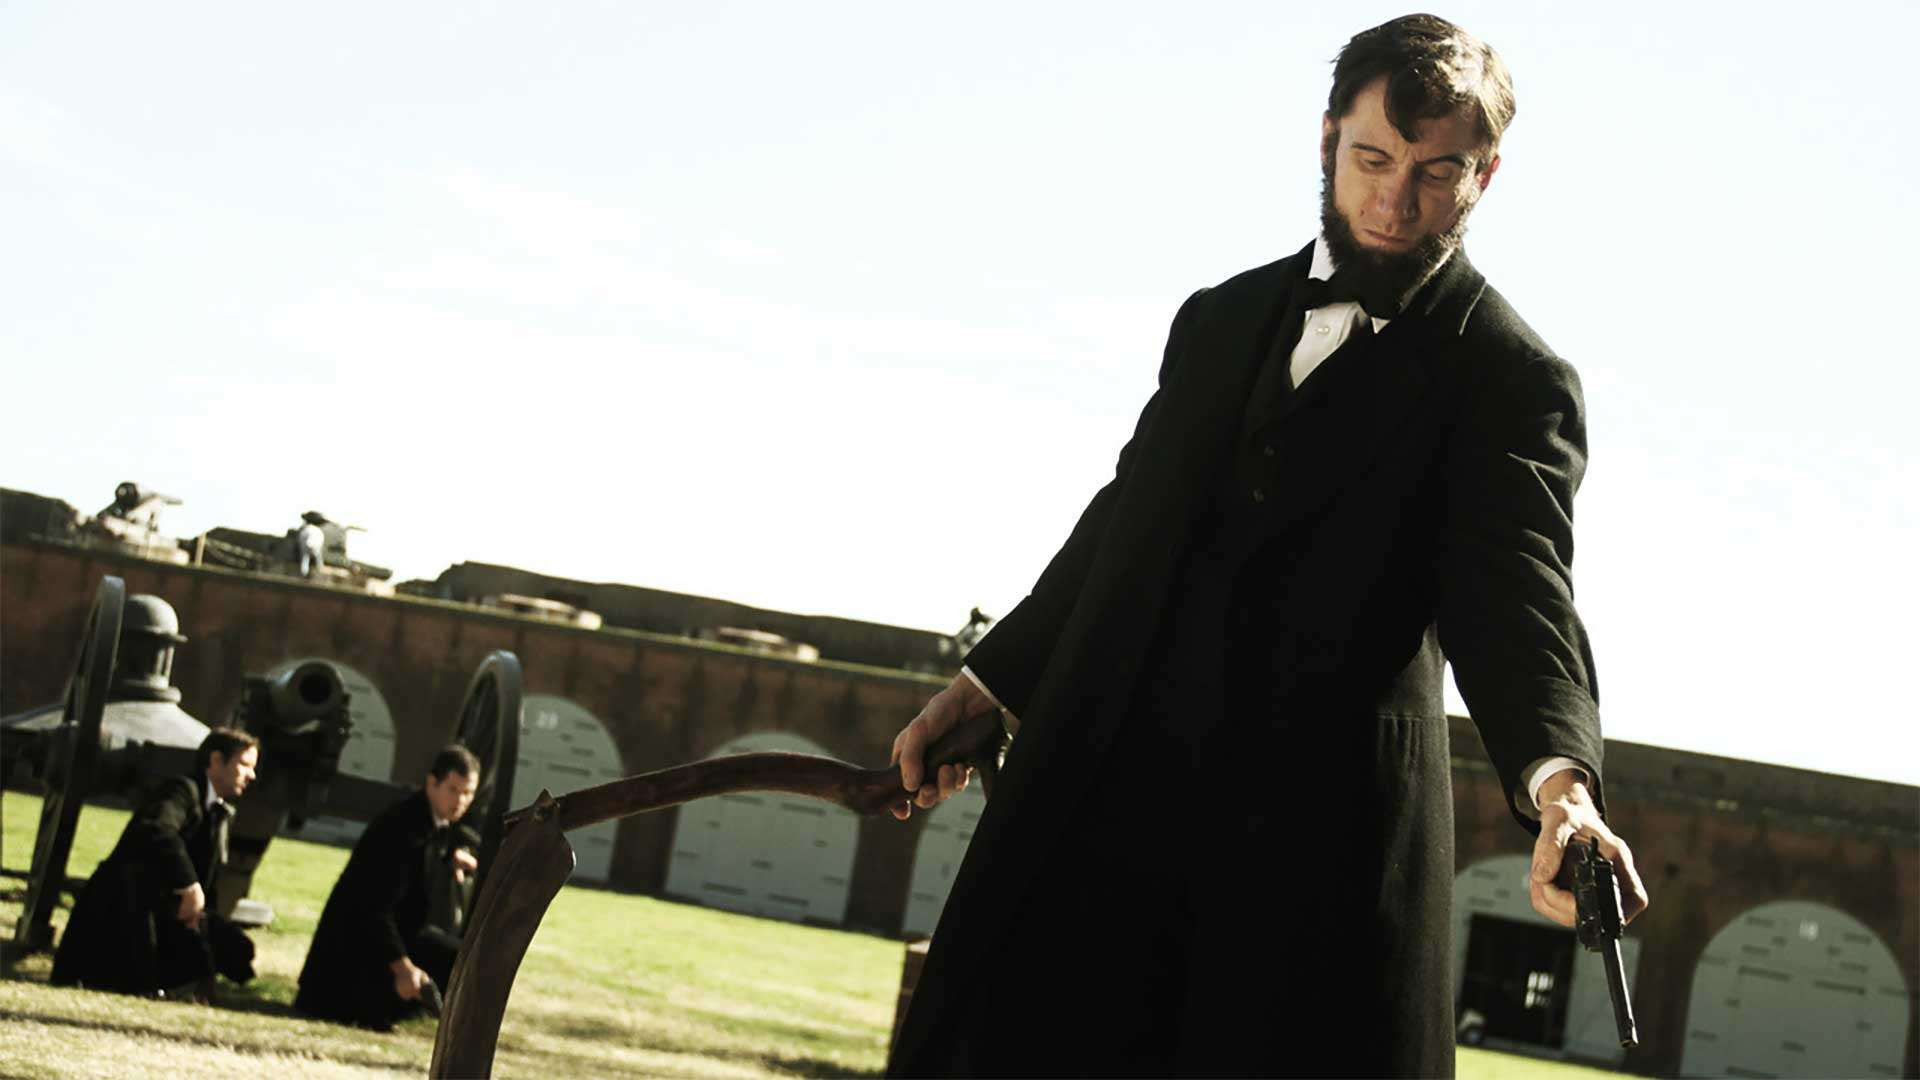 Bill Oberst, Jr. in Abraham Lincoln vs. Zombies (2012)